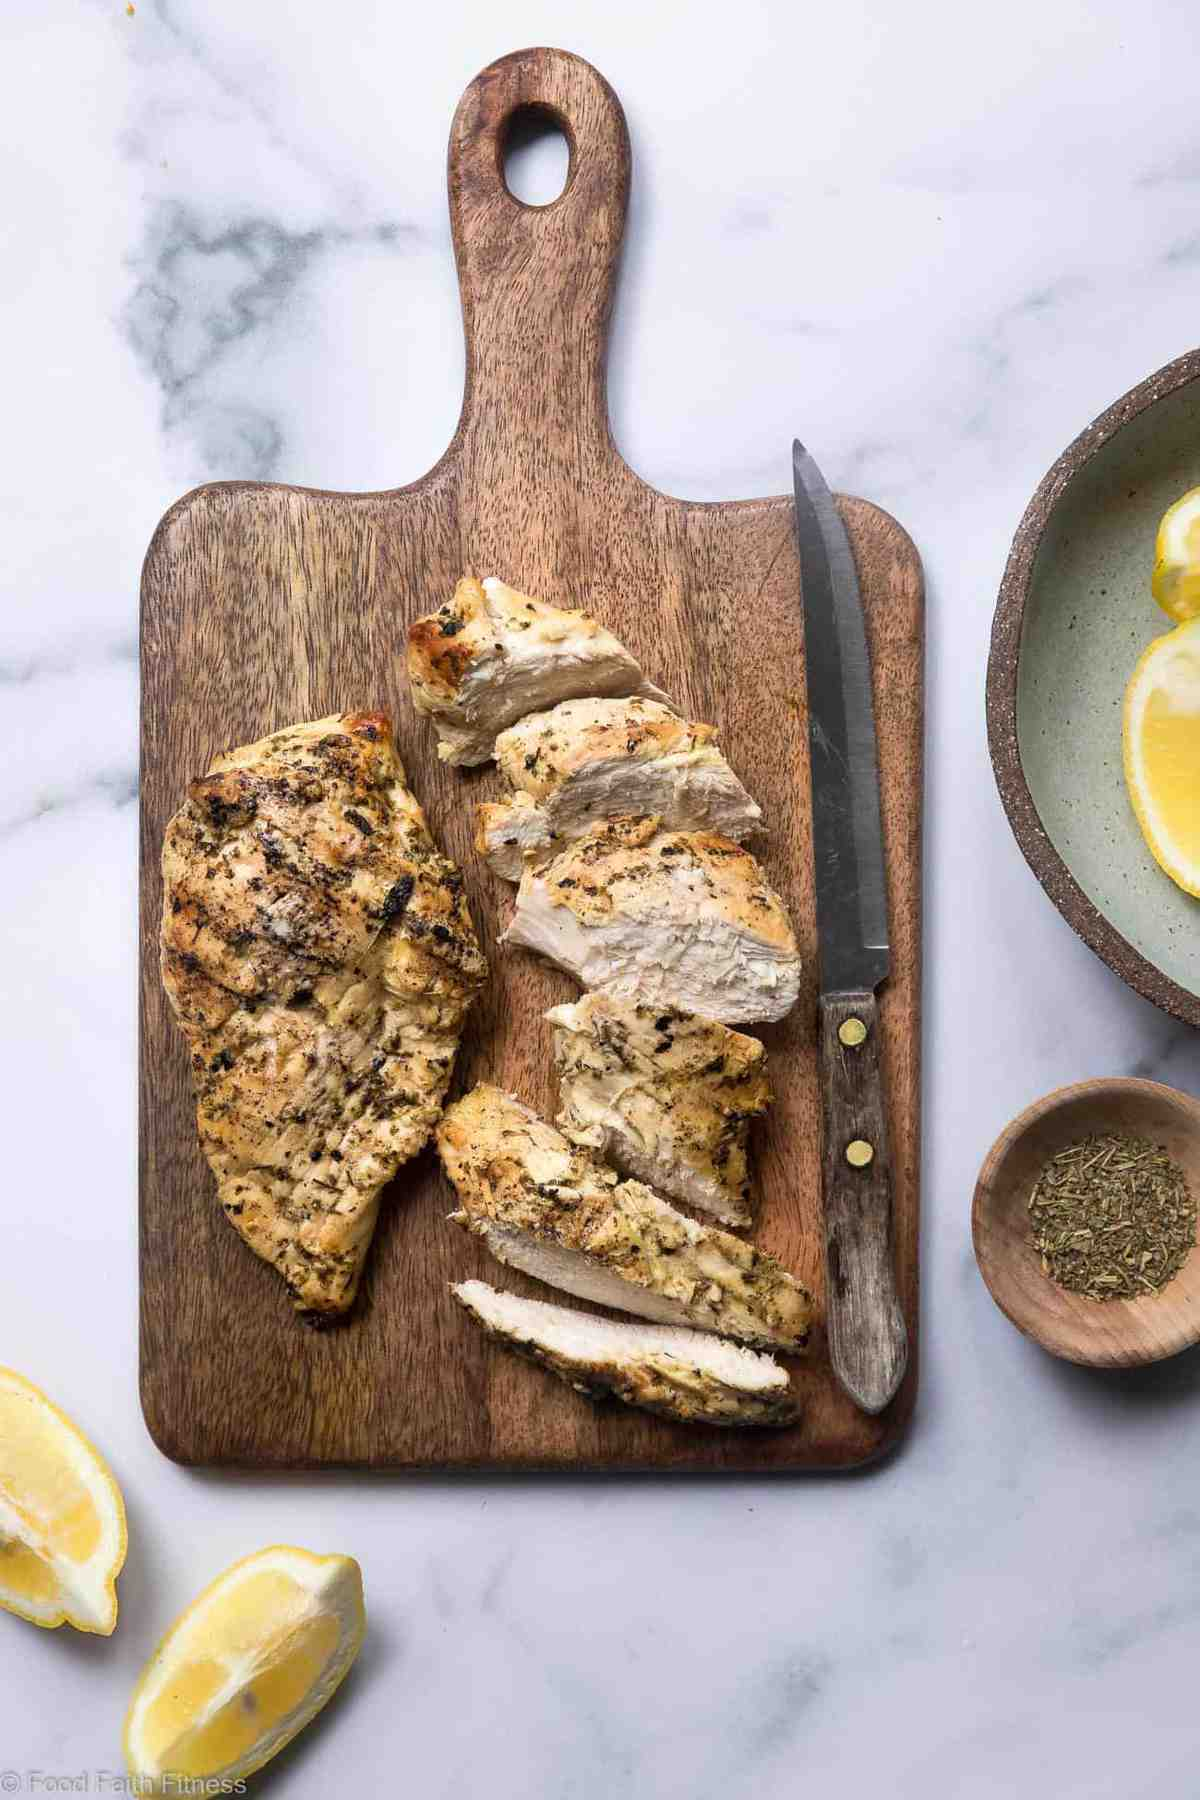 Easy Keto Gluten Free Marinade - This low carb, sugar free Chicken Marinade is the easiest and most versatile marinade for grilled chicken ever! Simple, made from pantry ingredients and gluten free/paleo/whole30! | #Foodfaithfitness |